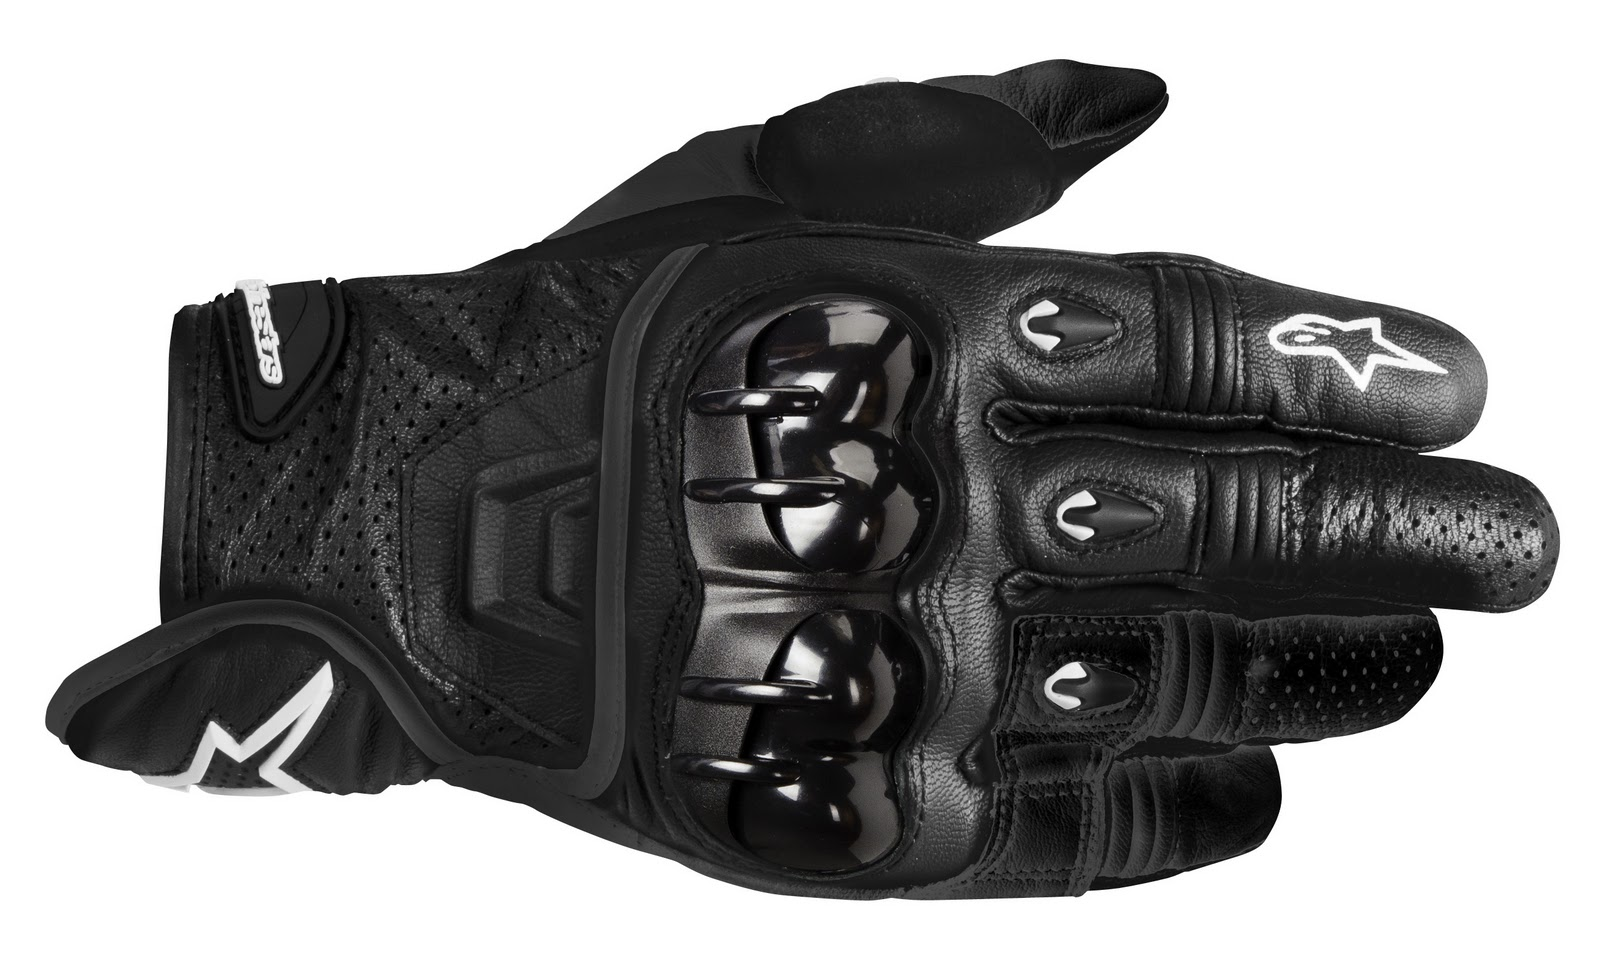 Motorcycle gloves double cuff - Motorcycle Jackets Helmets And Gear Reviews